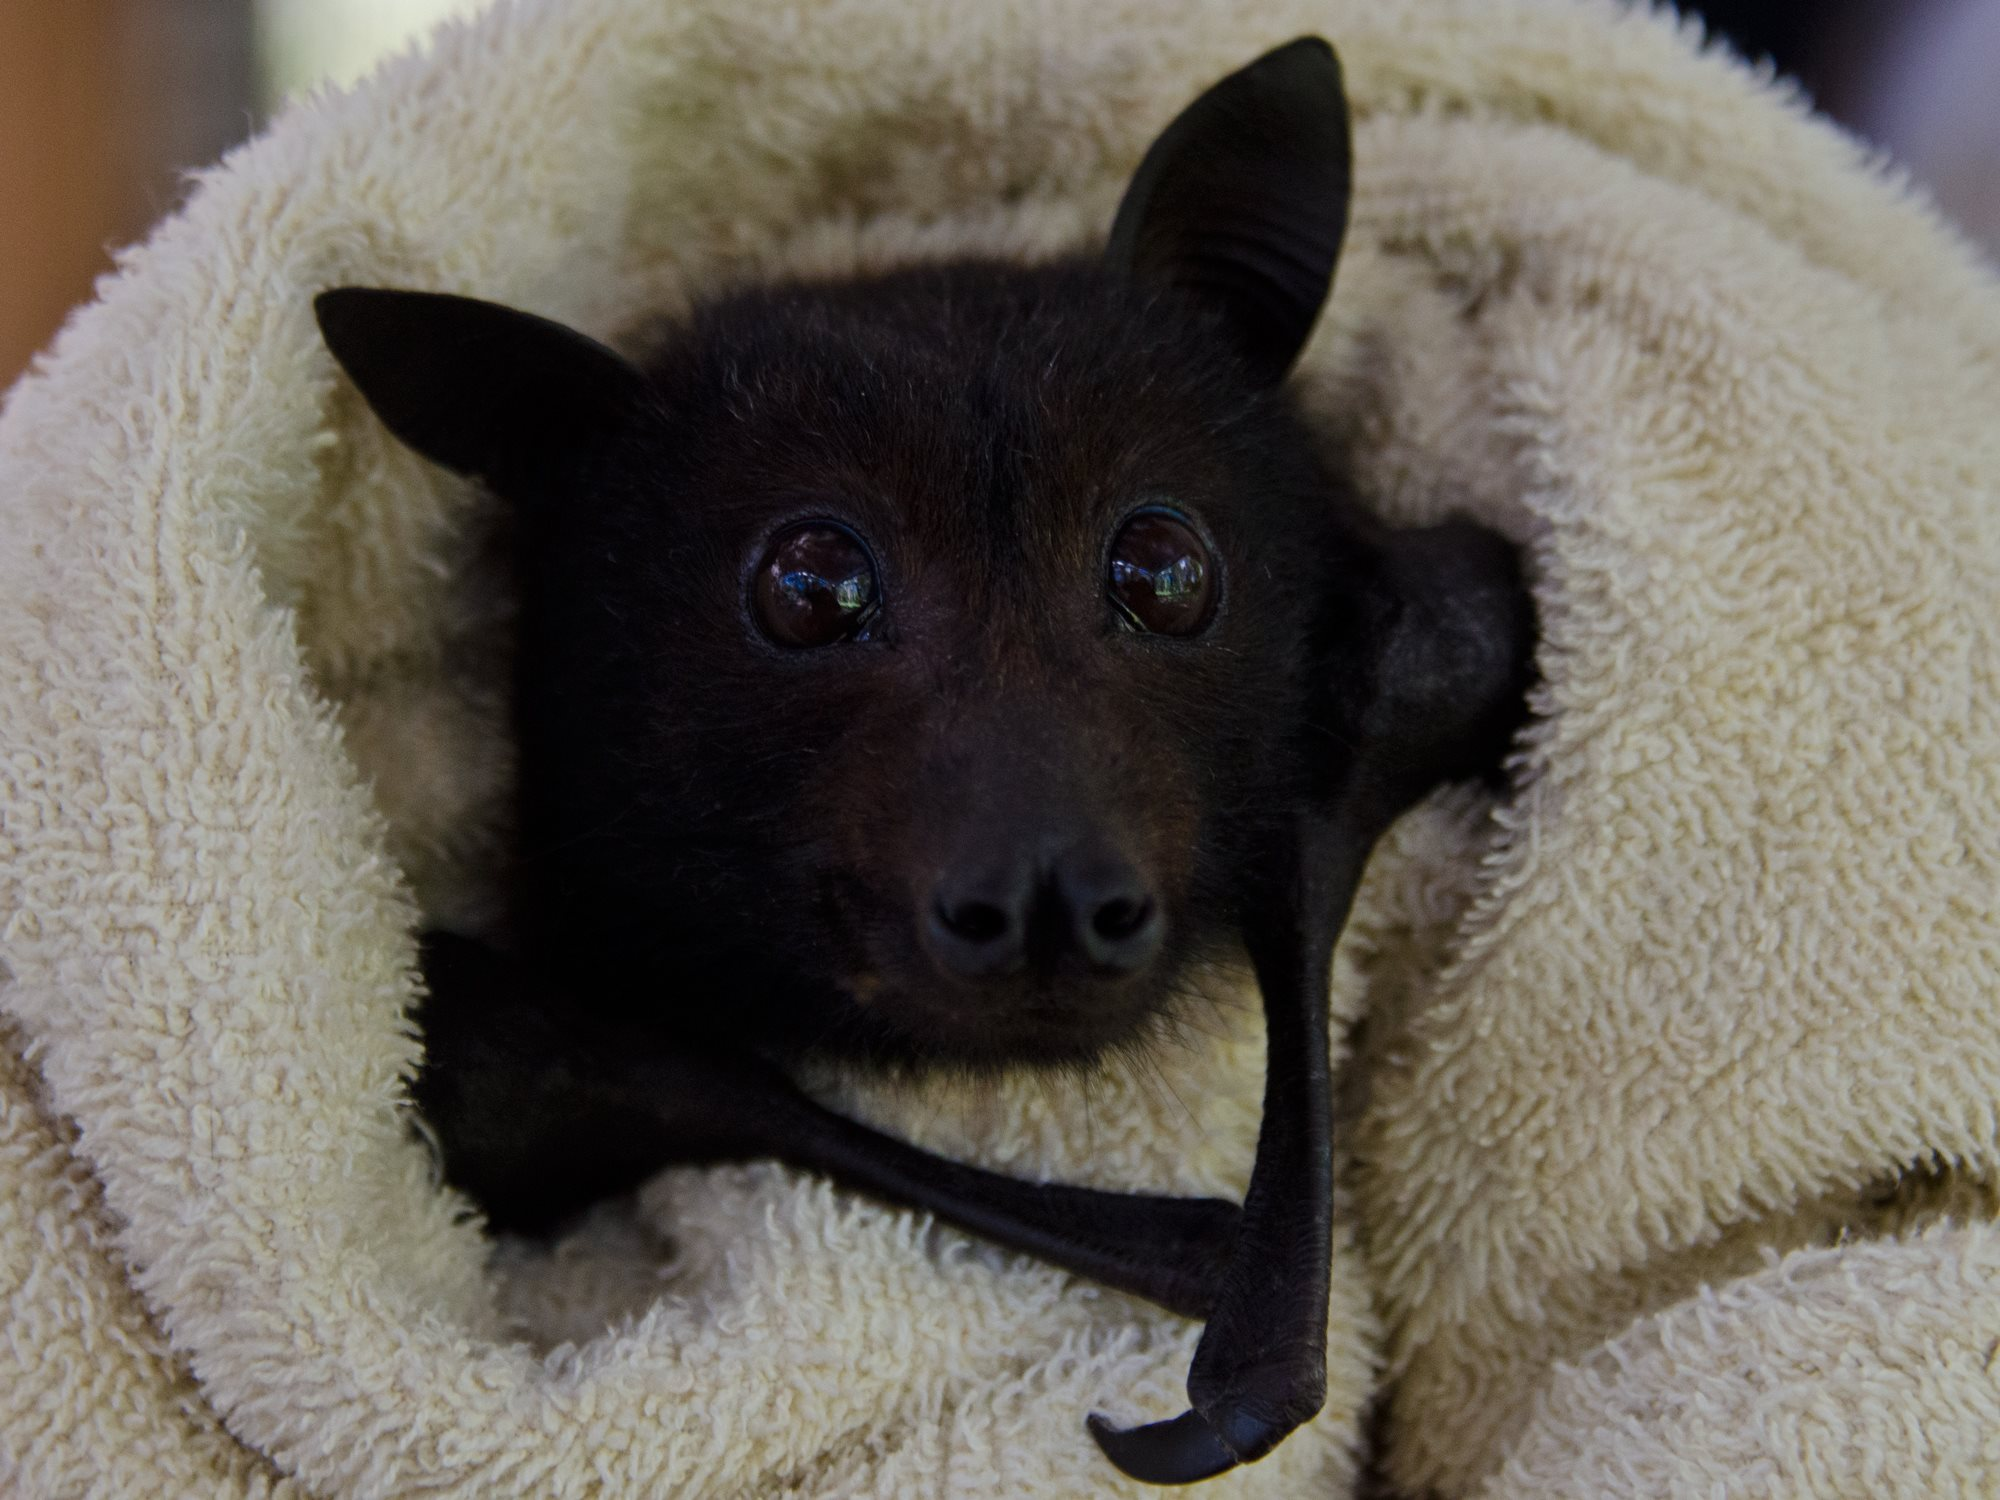 Because It's Cute: A hungry baby bat eating a banana in bed